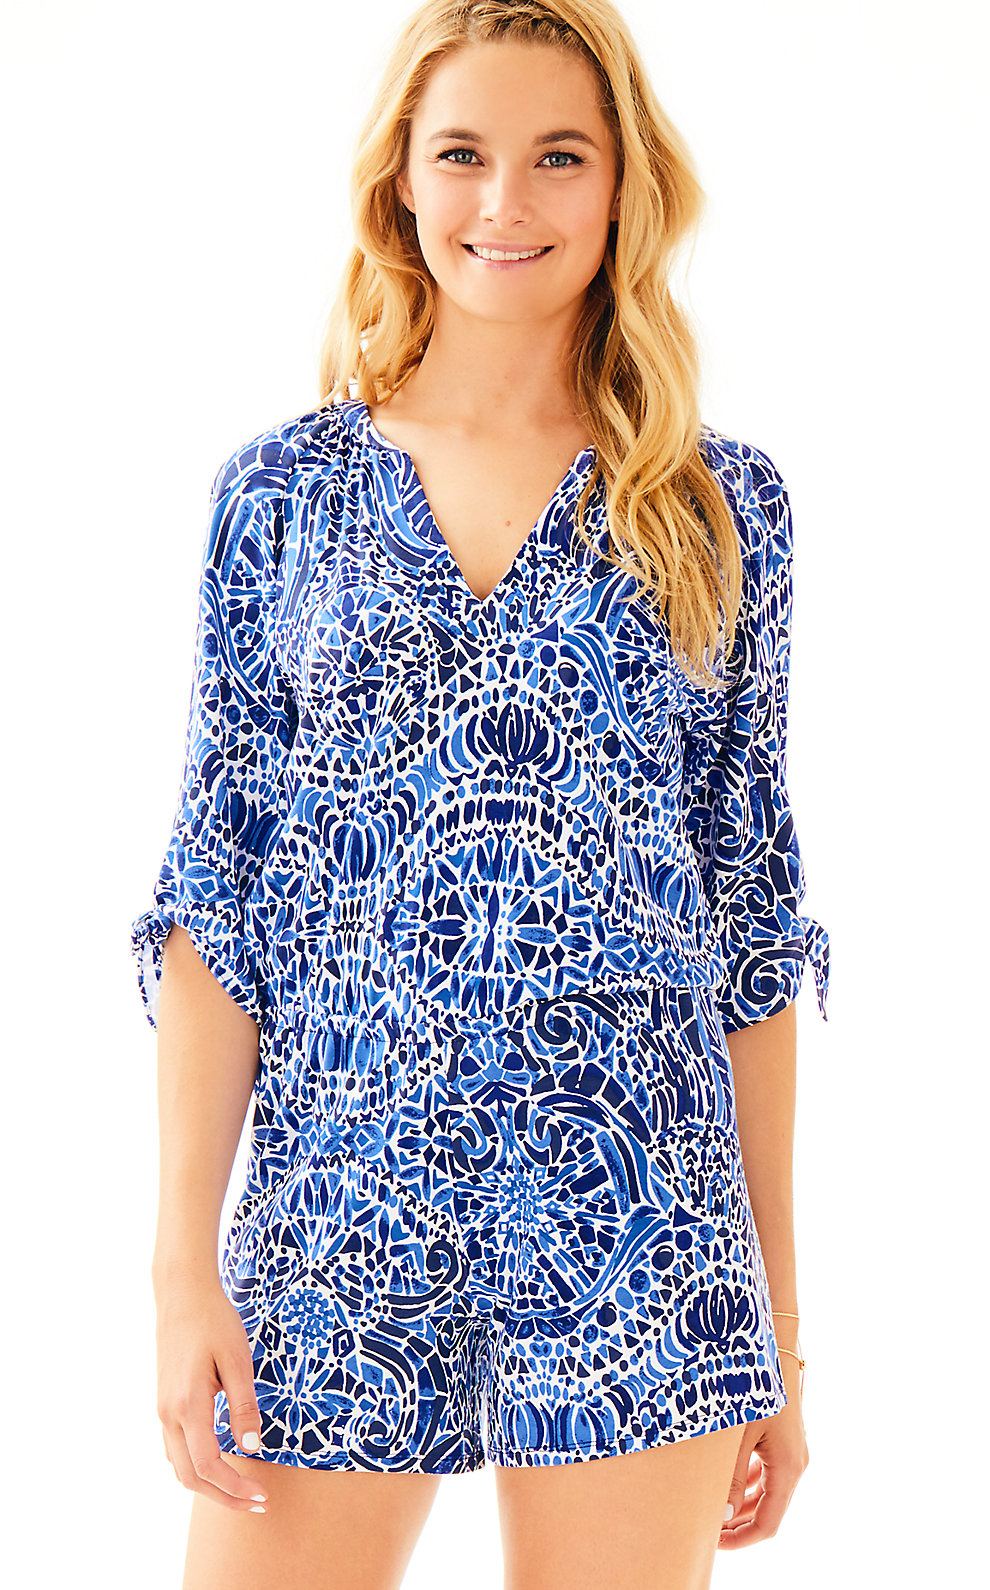 Lilly Pulitzer Bryce Romper